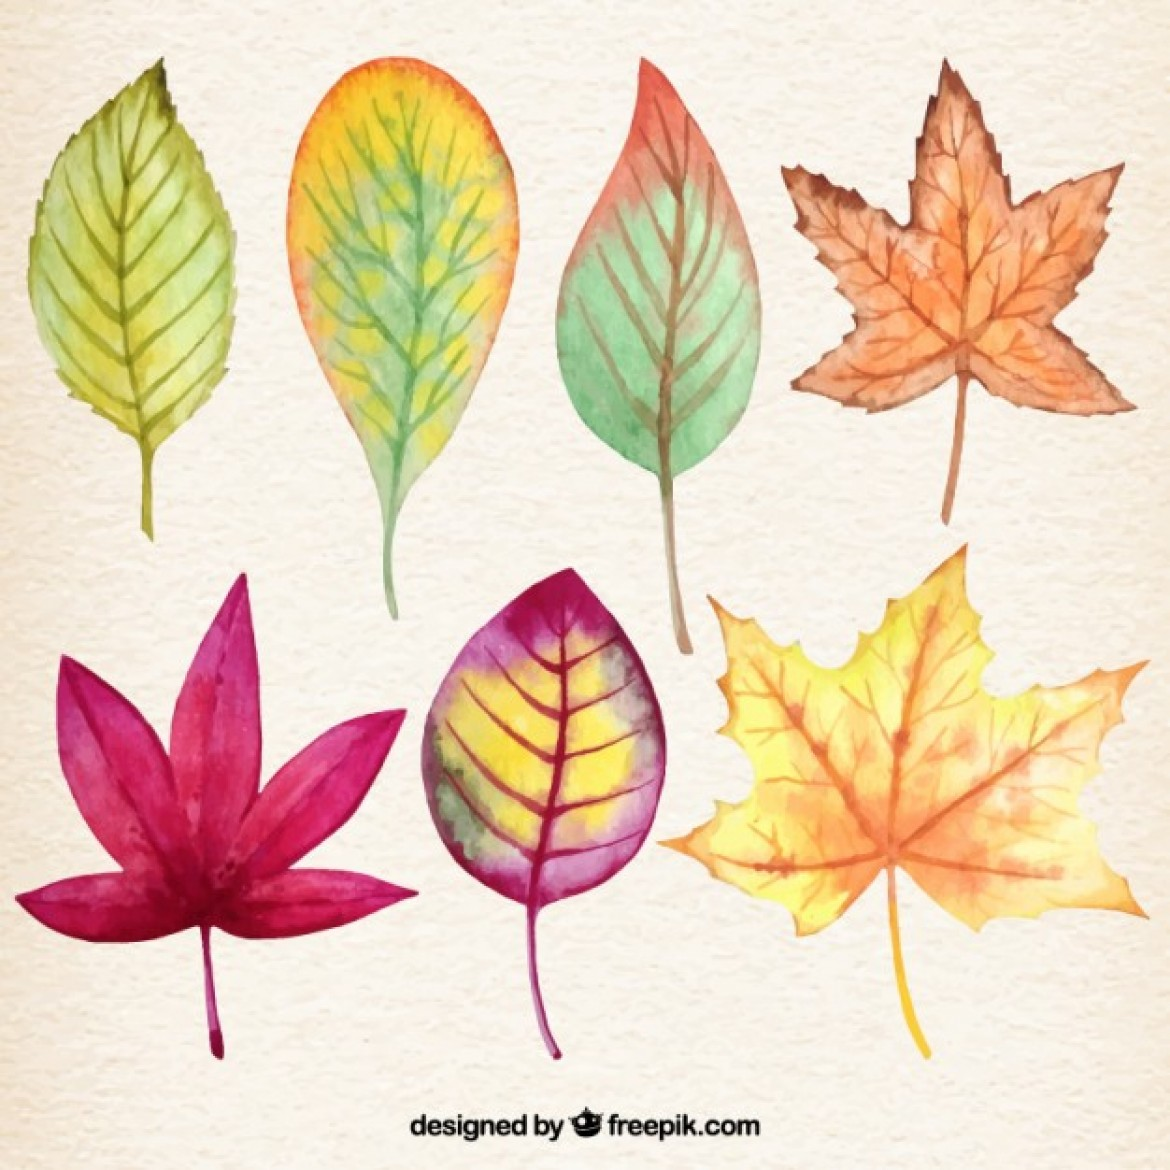 wpid-watercolor-autumnal-leaves_23-2147520416-1170x1170